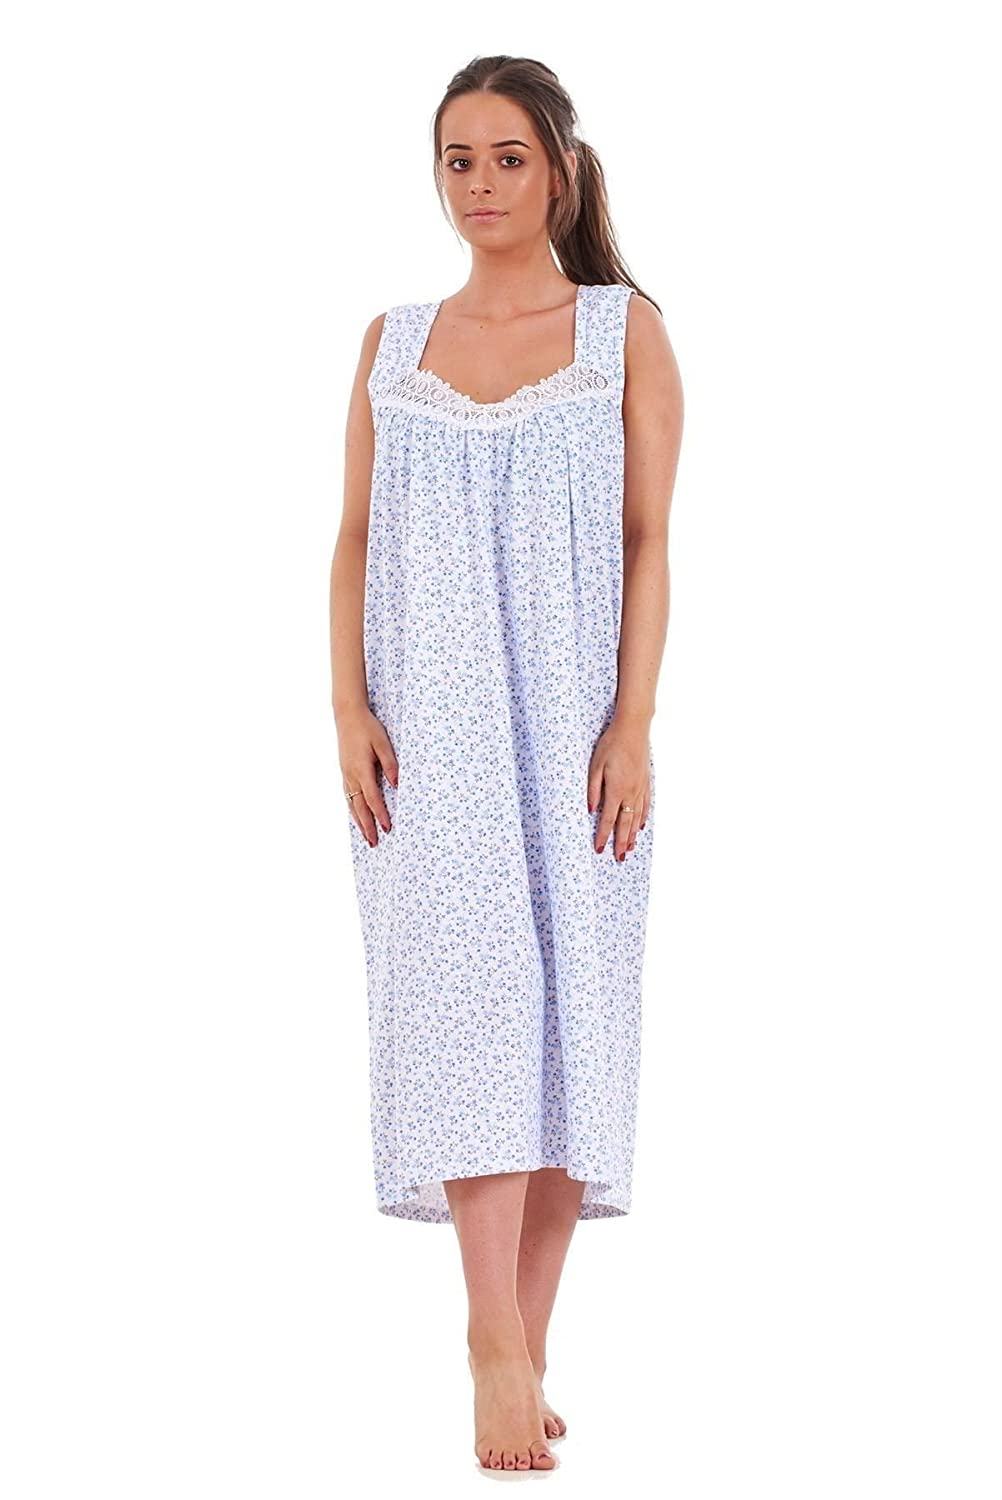 Bay eCom UK Ladies Nightwear Floral Print 100% Cotton Sleeveless Long Nightdress M to XXXL Does not Apply